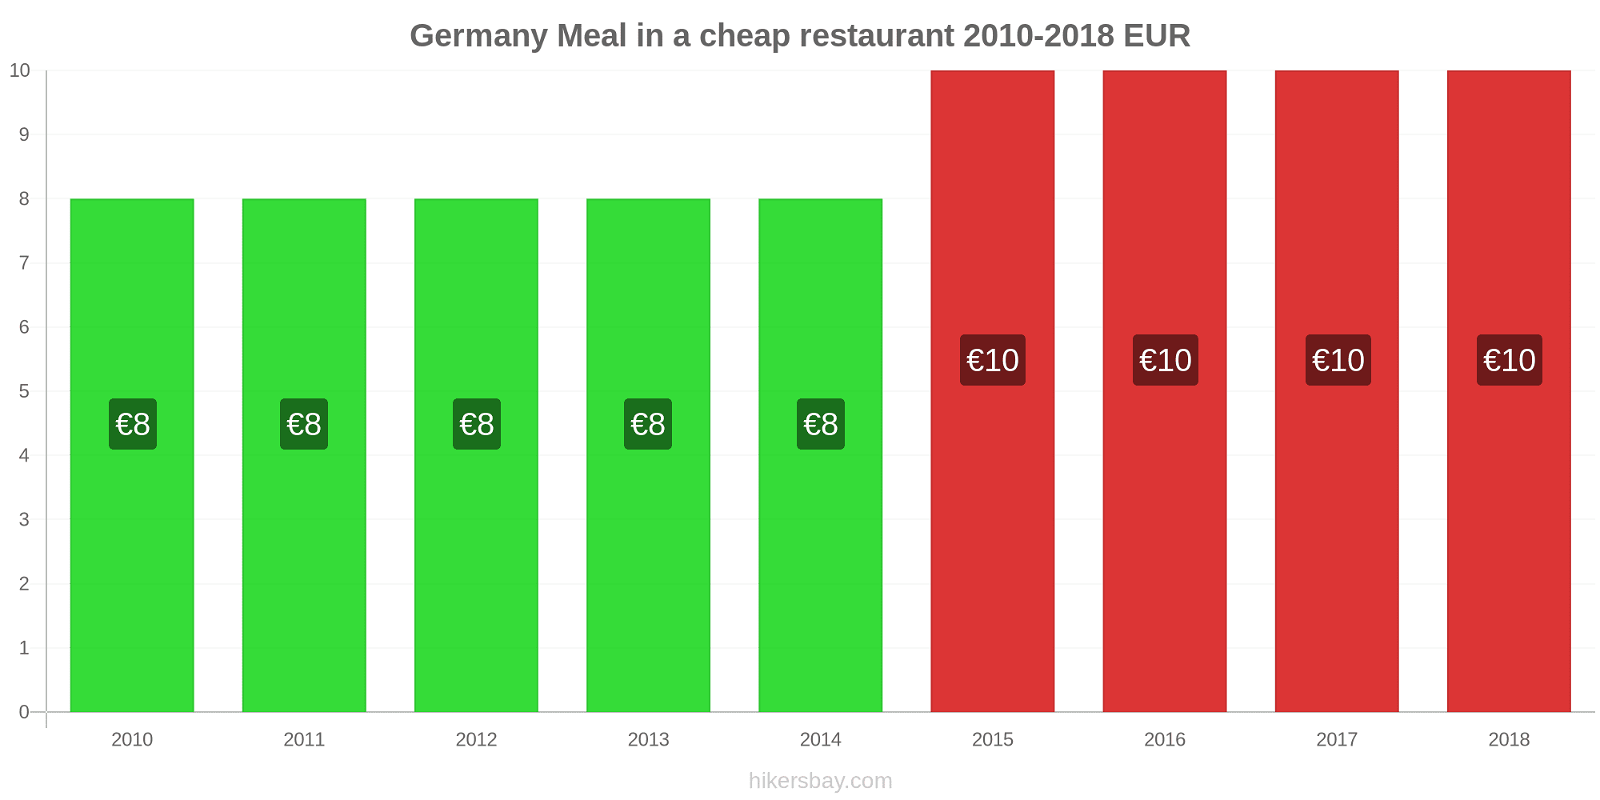 Germany price changes Meal in a cheap restaurant hikersbay.com